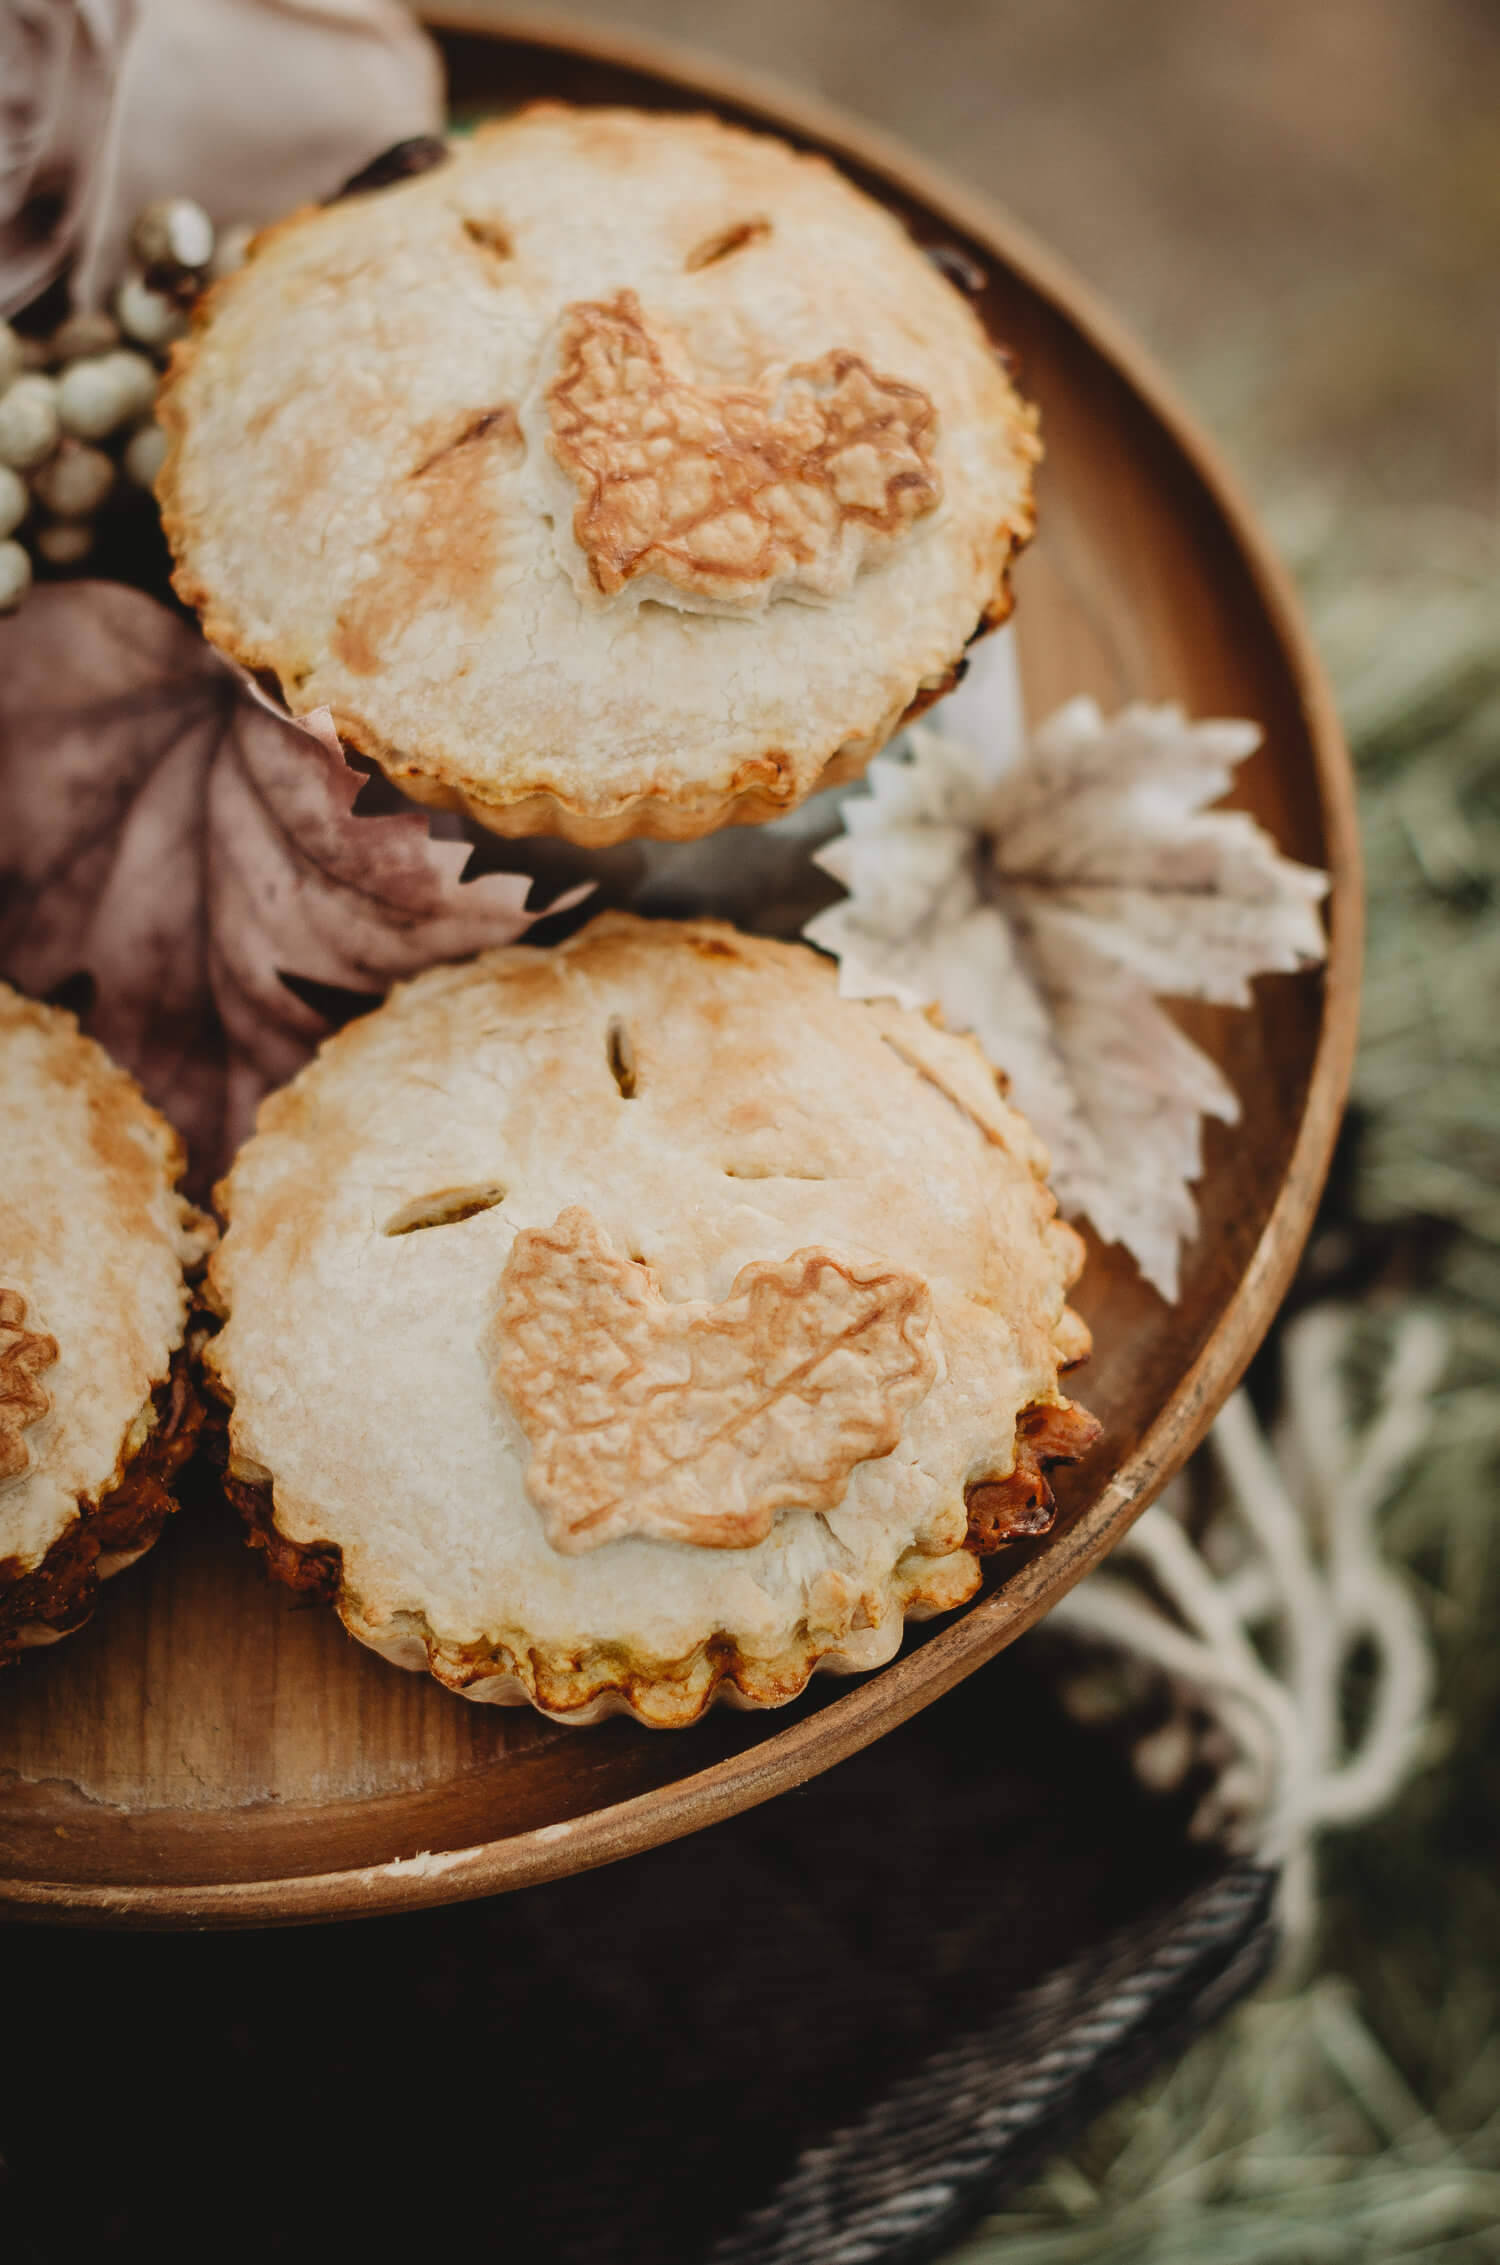 Yummy mini pecan pies that are topped with leaf cutouts. The perfect dessert for a falling in love themed bridal shower. Click to see many more bridal shower ideas from this Fall in Love party theme. Created by party stylist Mint Event Design. #bridalshowers #bridalshowerideas #rusticwedding #rusticbridalshower #bridalshowerdecor #farmwedding #partyideas #fallbridalshower #pecanpies #bridaslshowerdessert #minidesserts